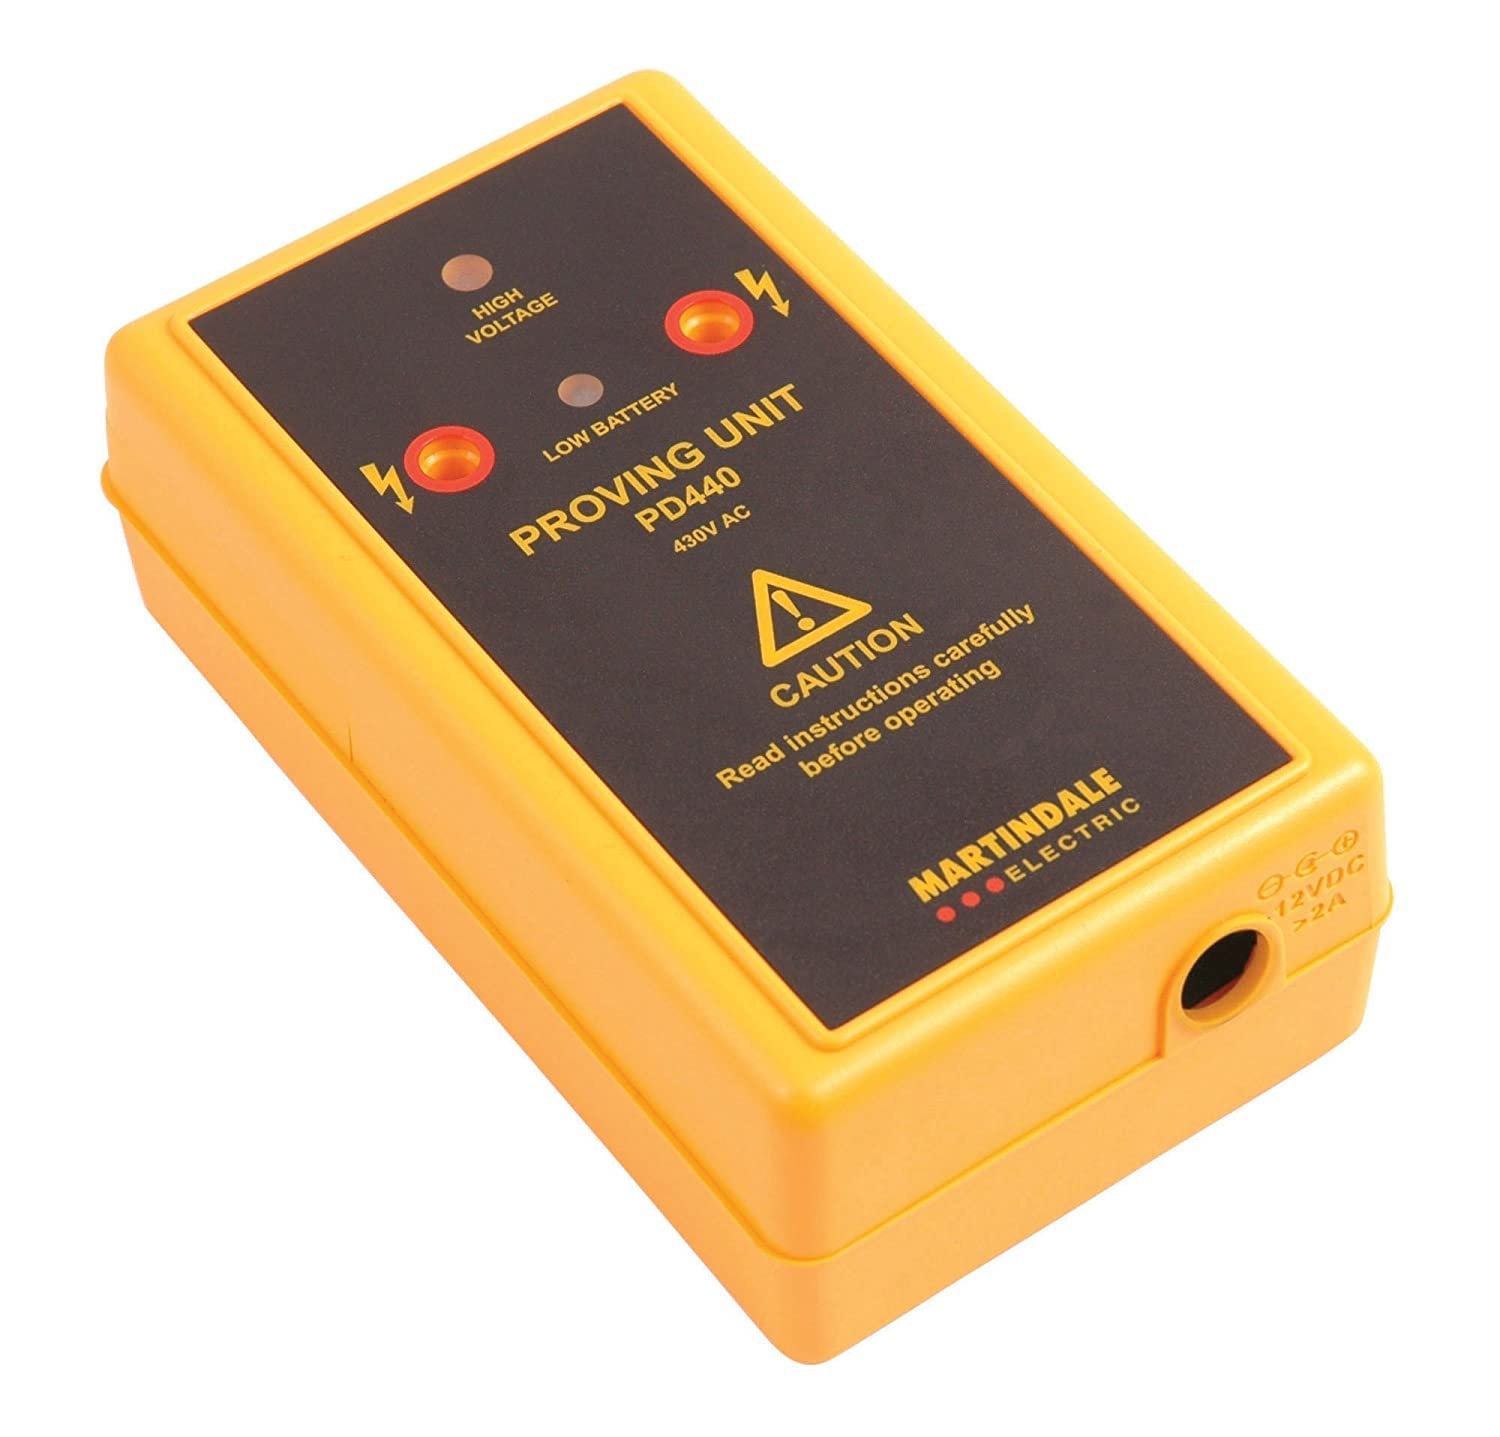 Martindale Vipd138 Voltage Indicator And Proving Unit Kit Amazonco Mains With A Led Business Industry Science